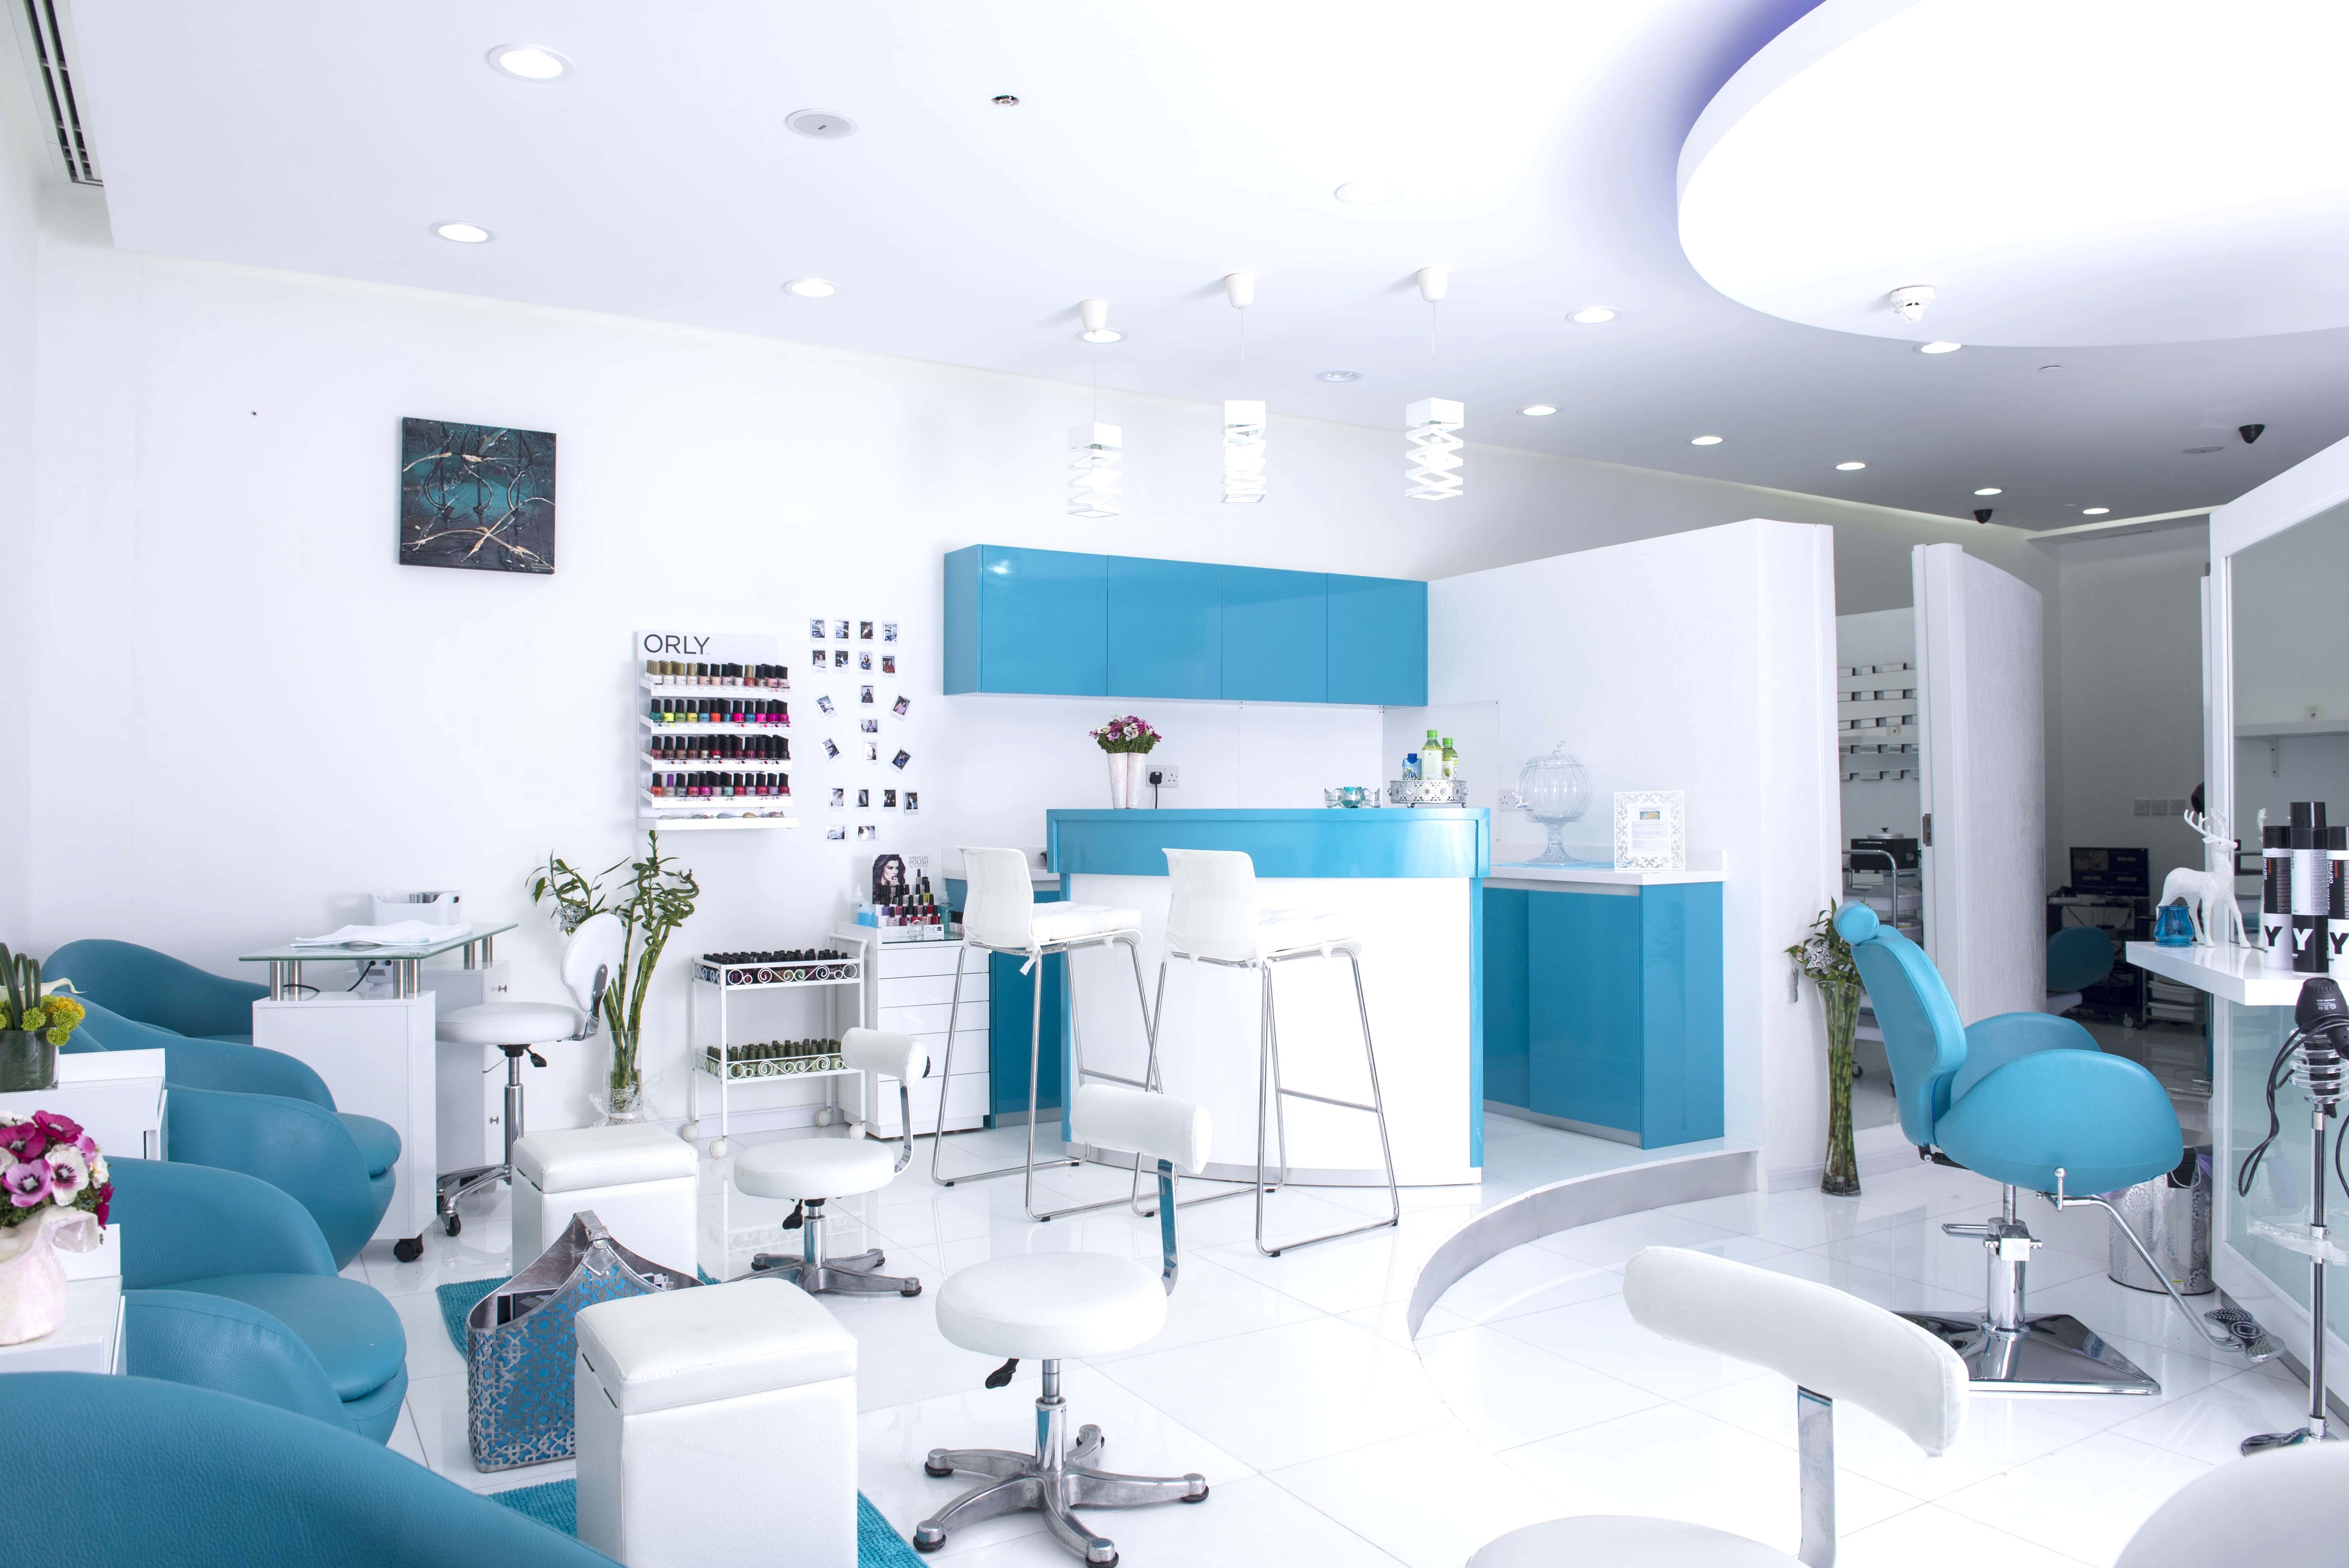 Salon Spa Nail Salon In Sunset Mall Dubai Nail Ftempo